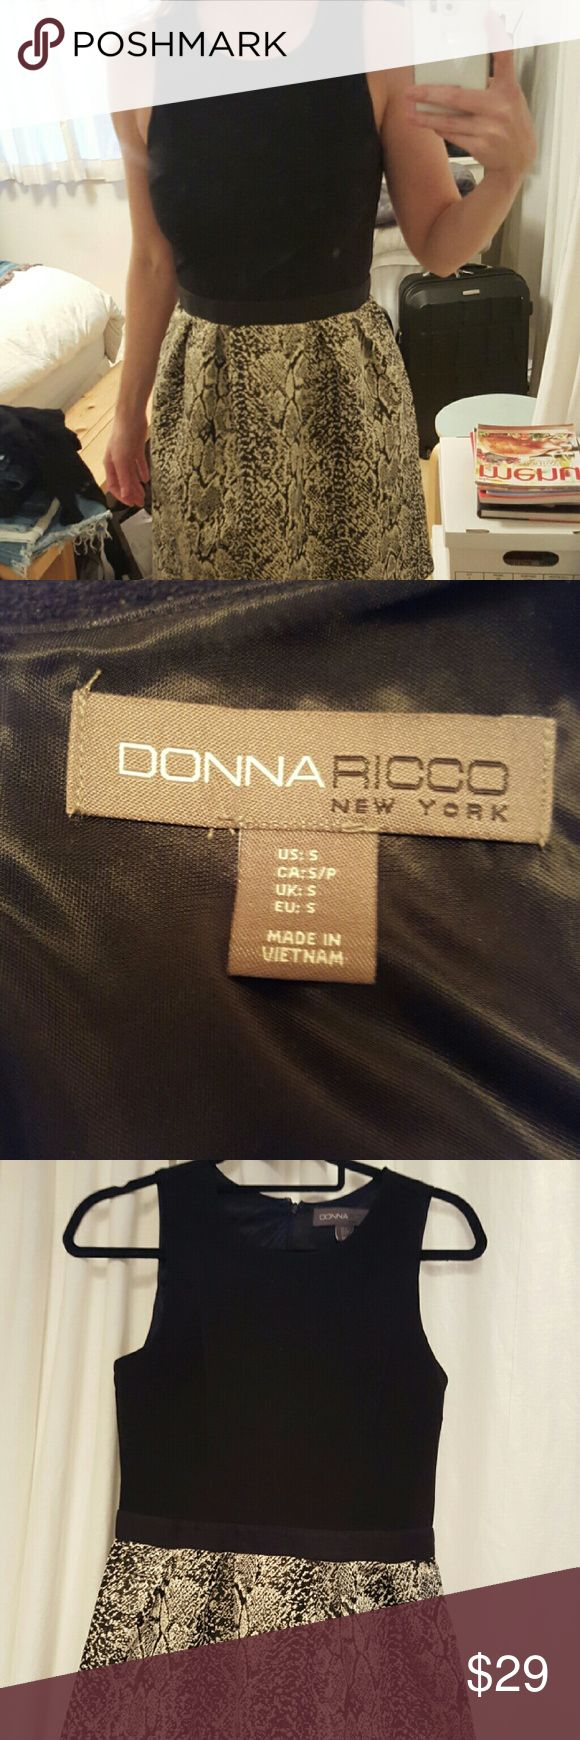 Donna Ricco New York Dress Black spandex type top with gold metallic snake skin print bottom Donna Ricco Dresses Mini